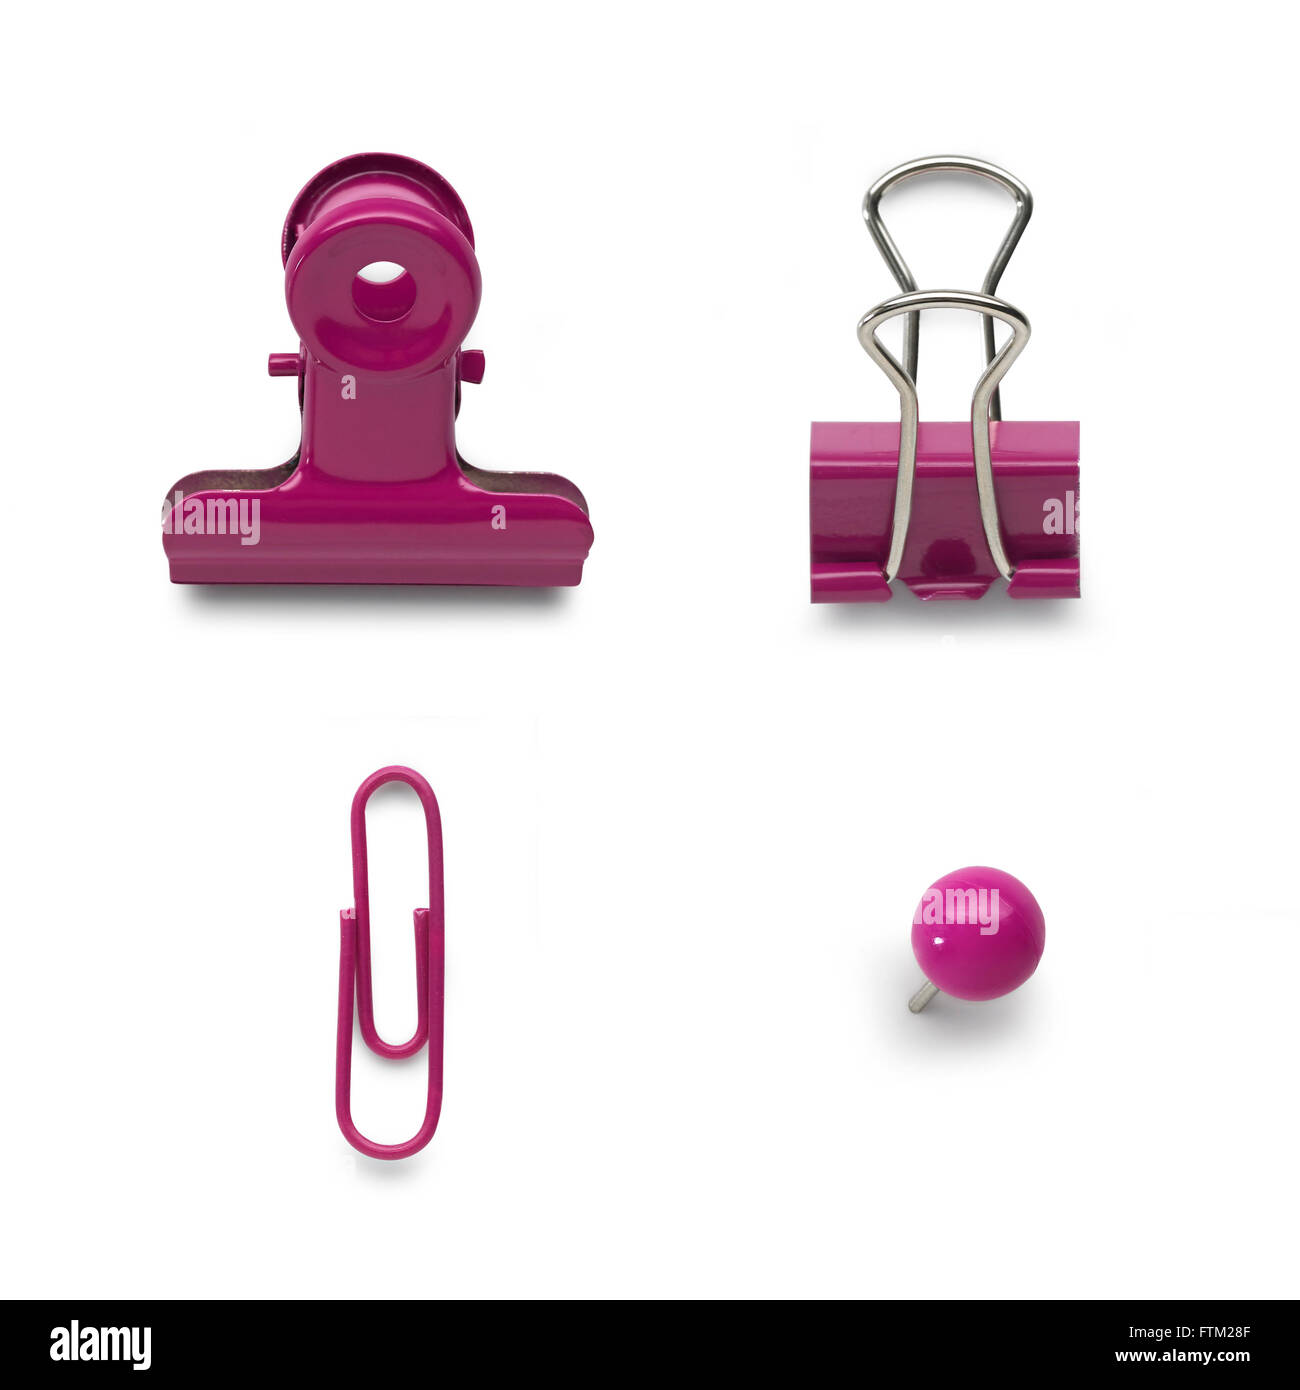 Pink office stationary - Stock Image